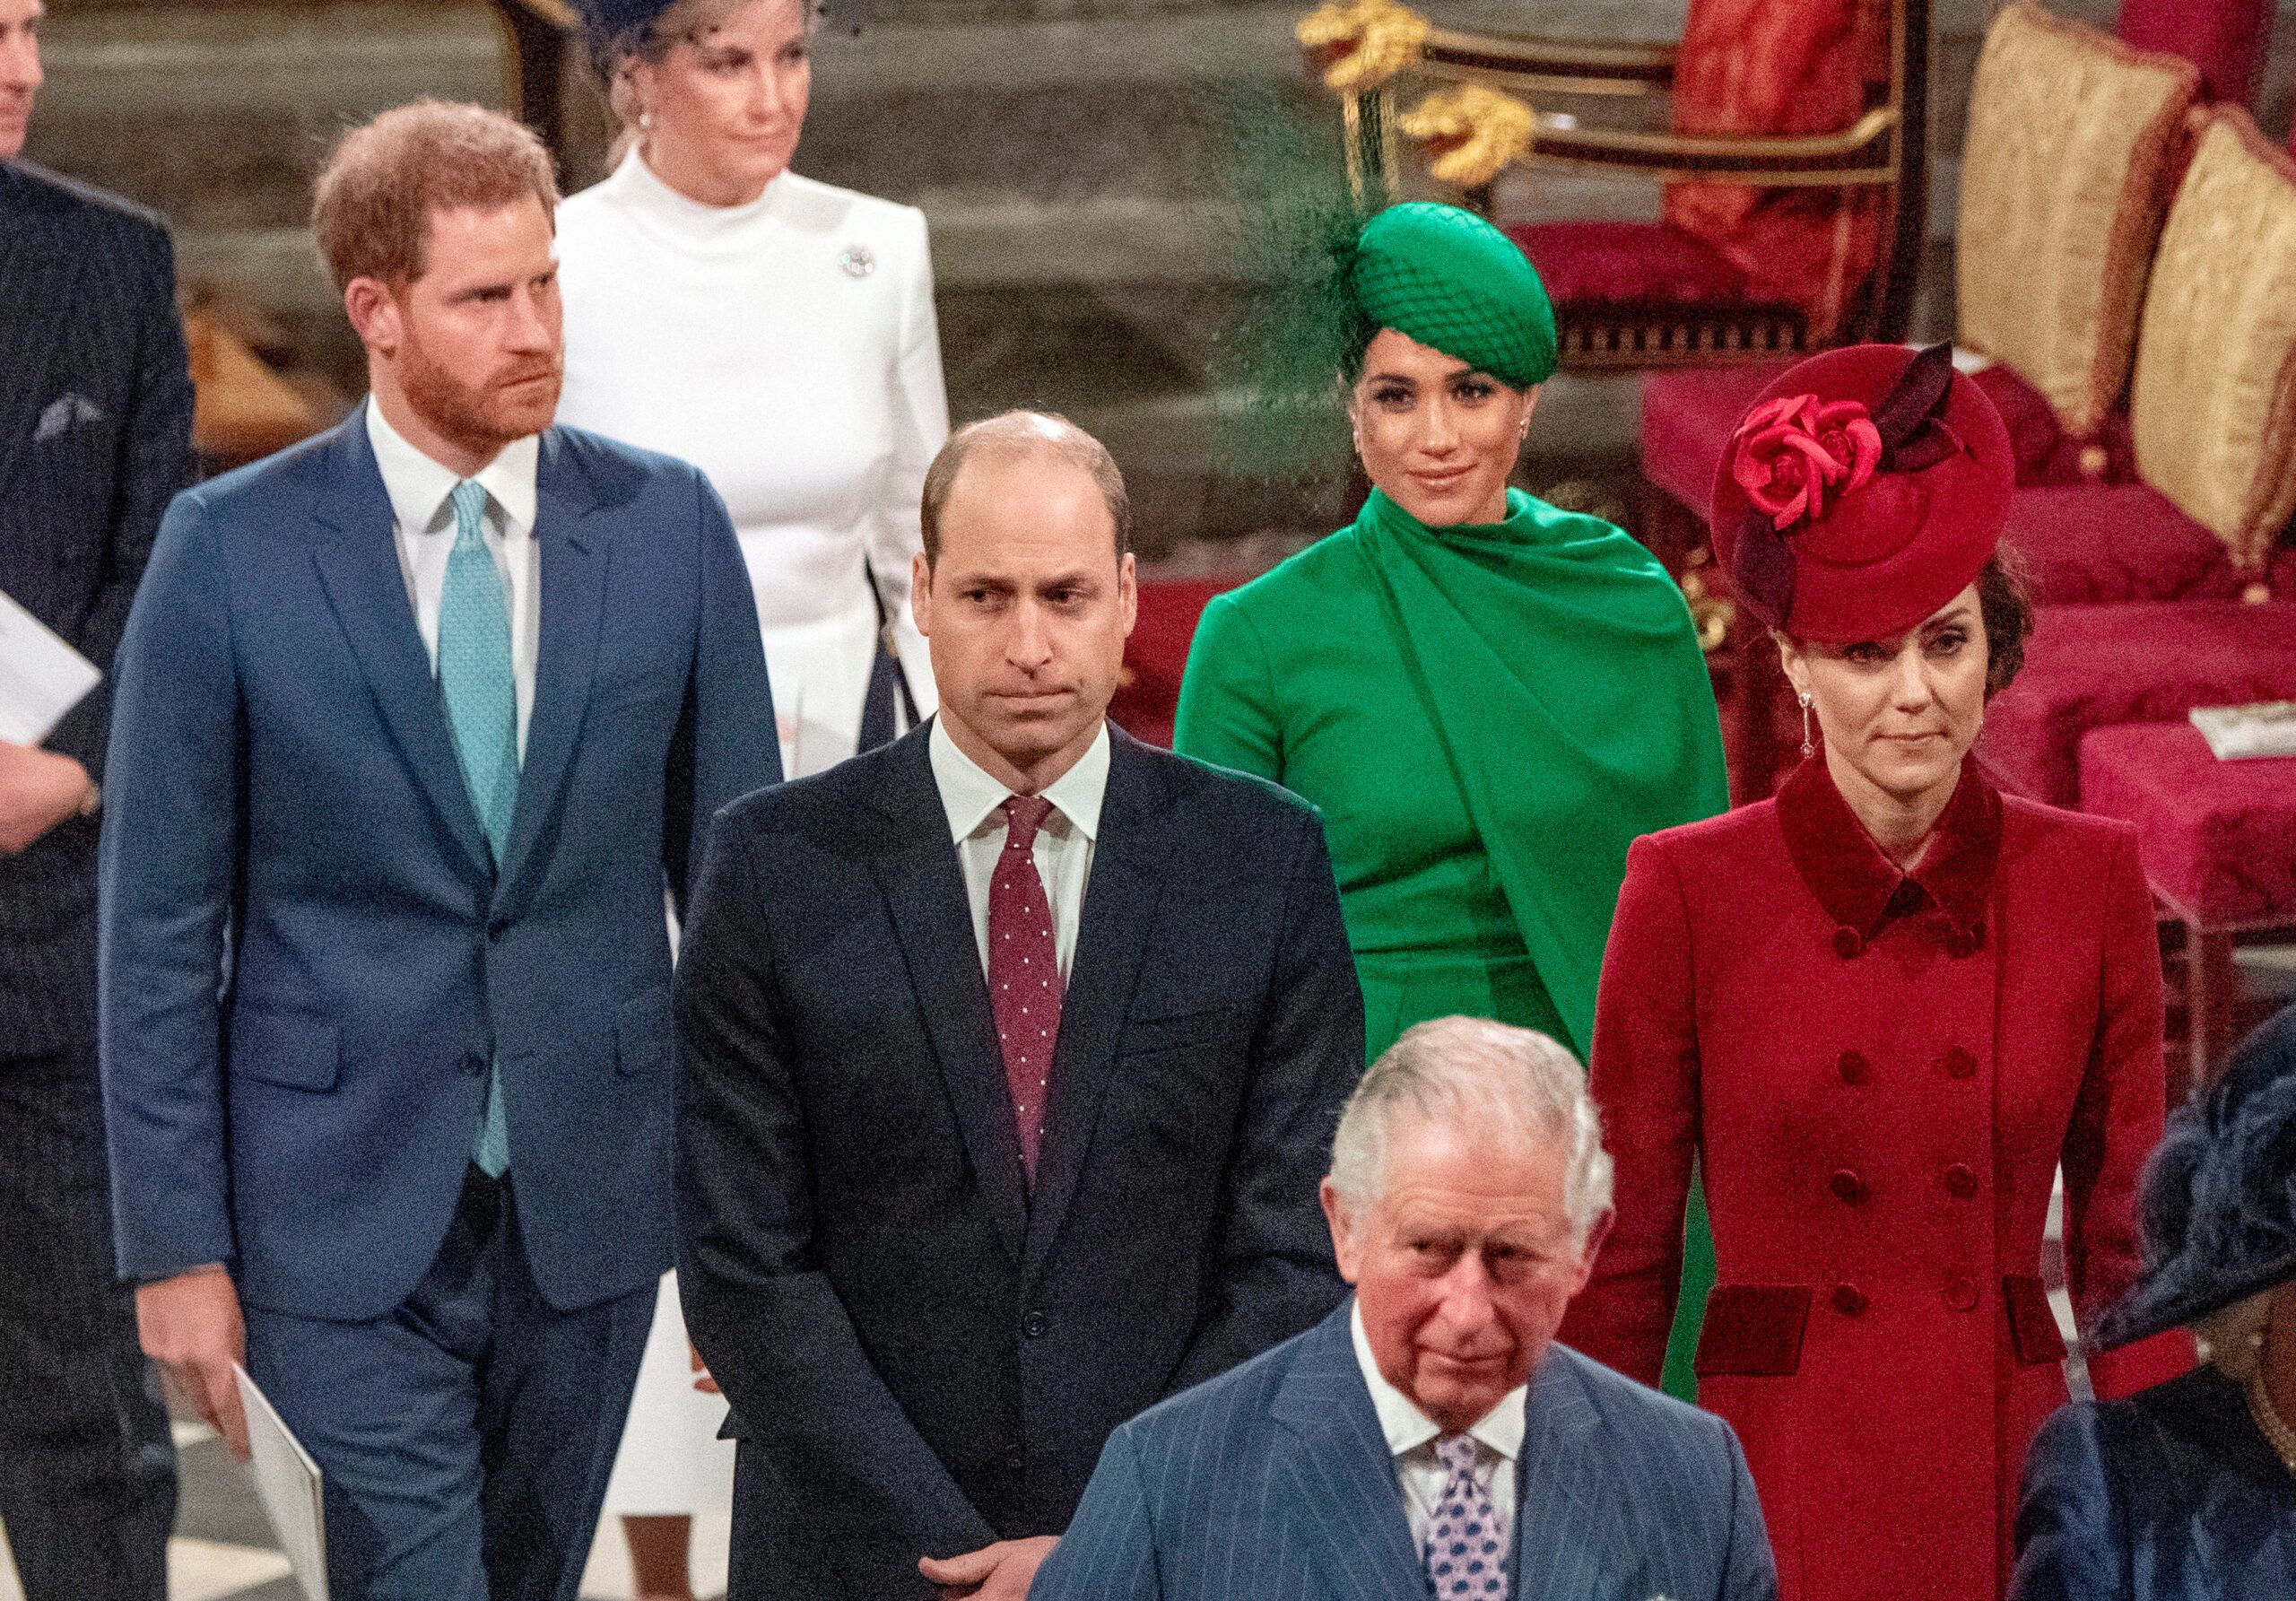 Royal Family Revelations From Meghan Markle & Prince Harry's Biography 'Finding Freedom' - Fame10